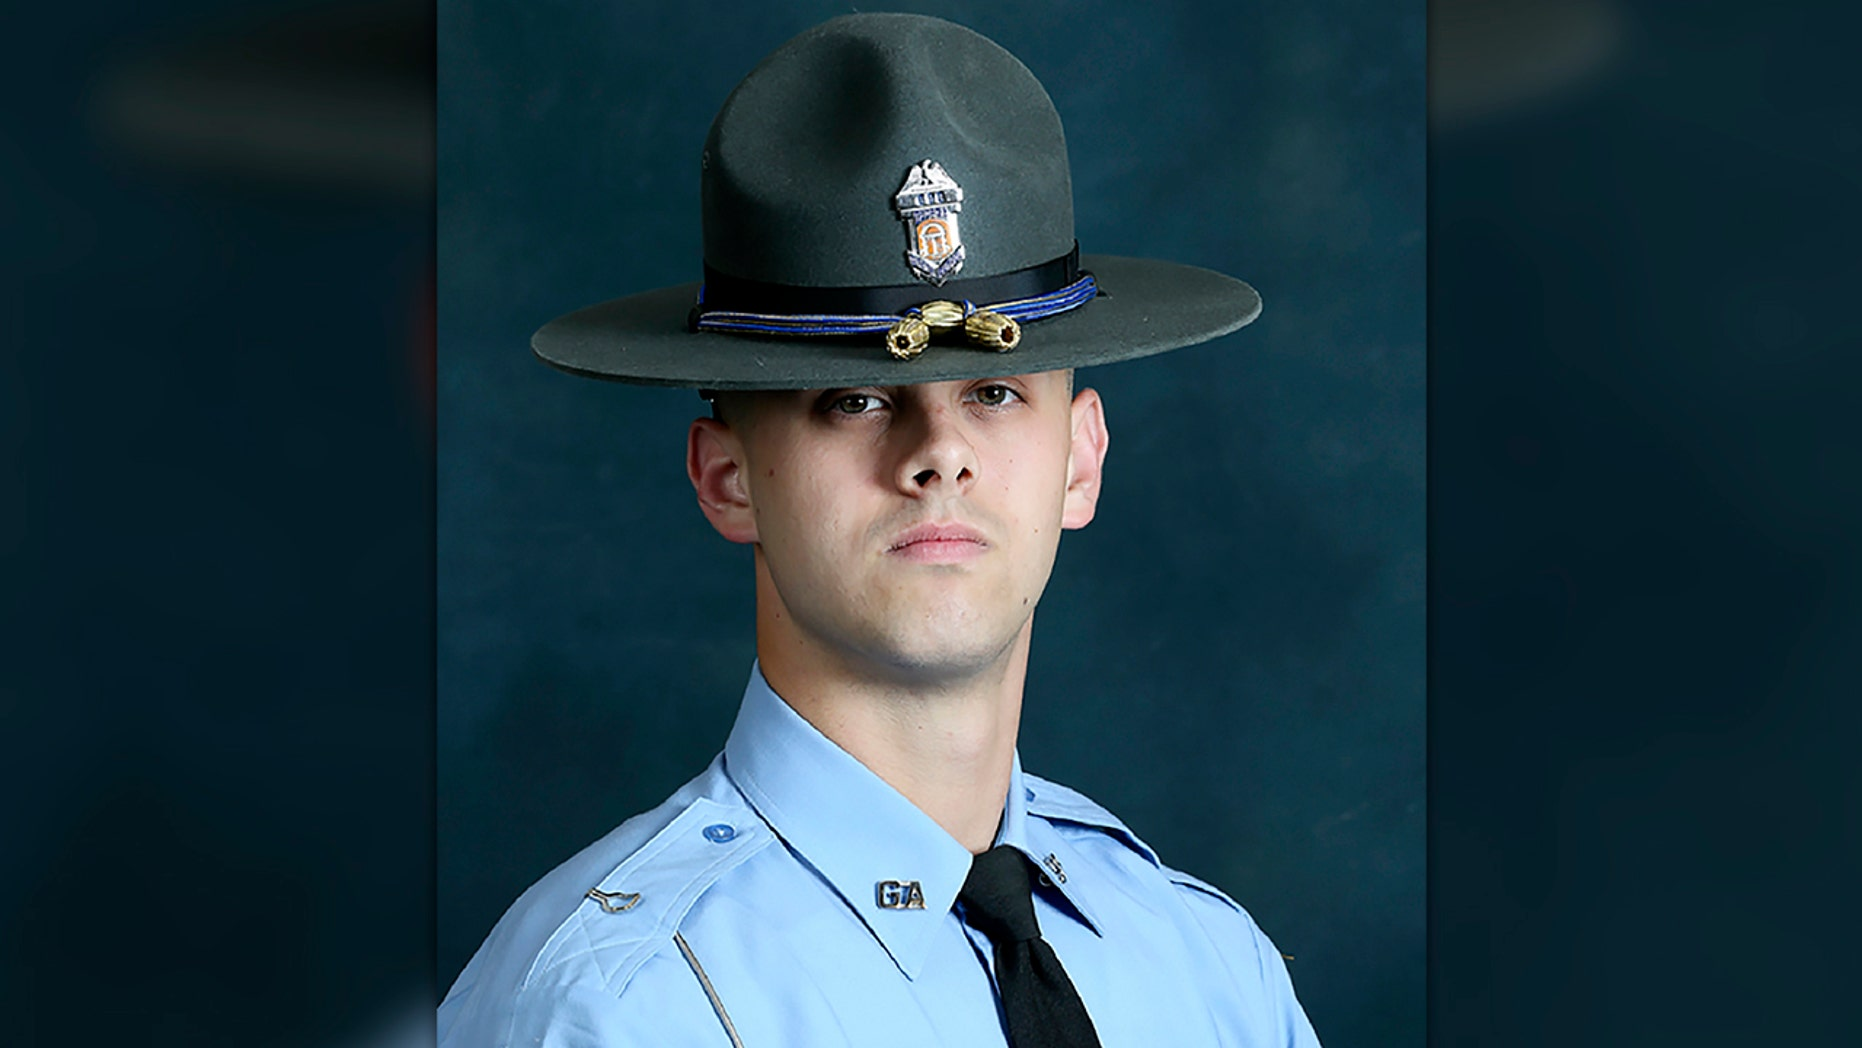 In this undated photo released by the Georgia Department of Public Safety, State trooper Jacob Gordon Thompson is seen in an official portrait. (Georgia Department of Public Safety via AP)